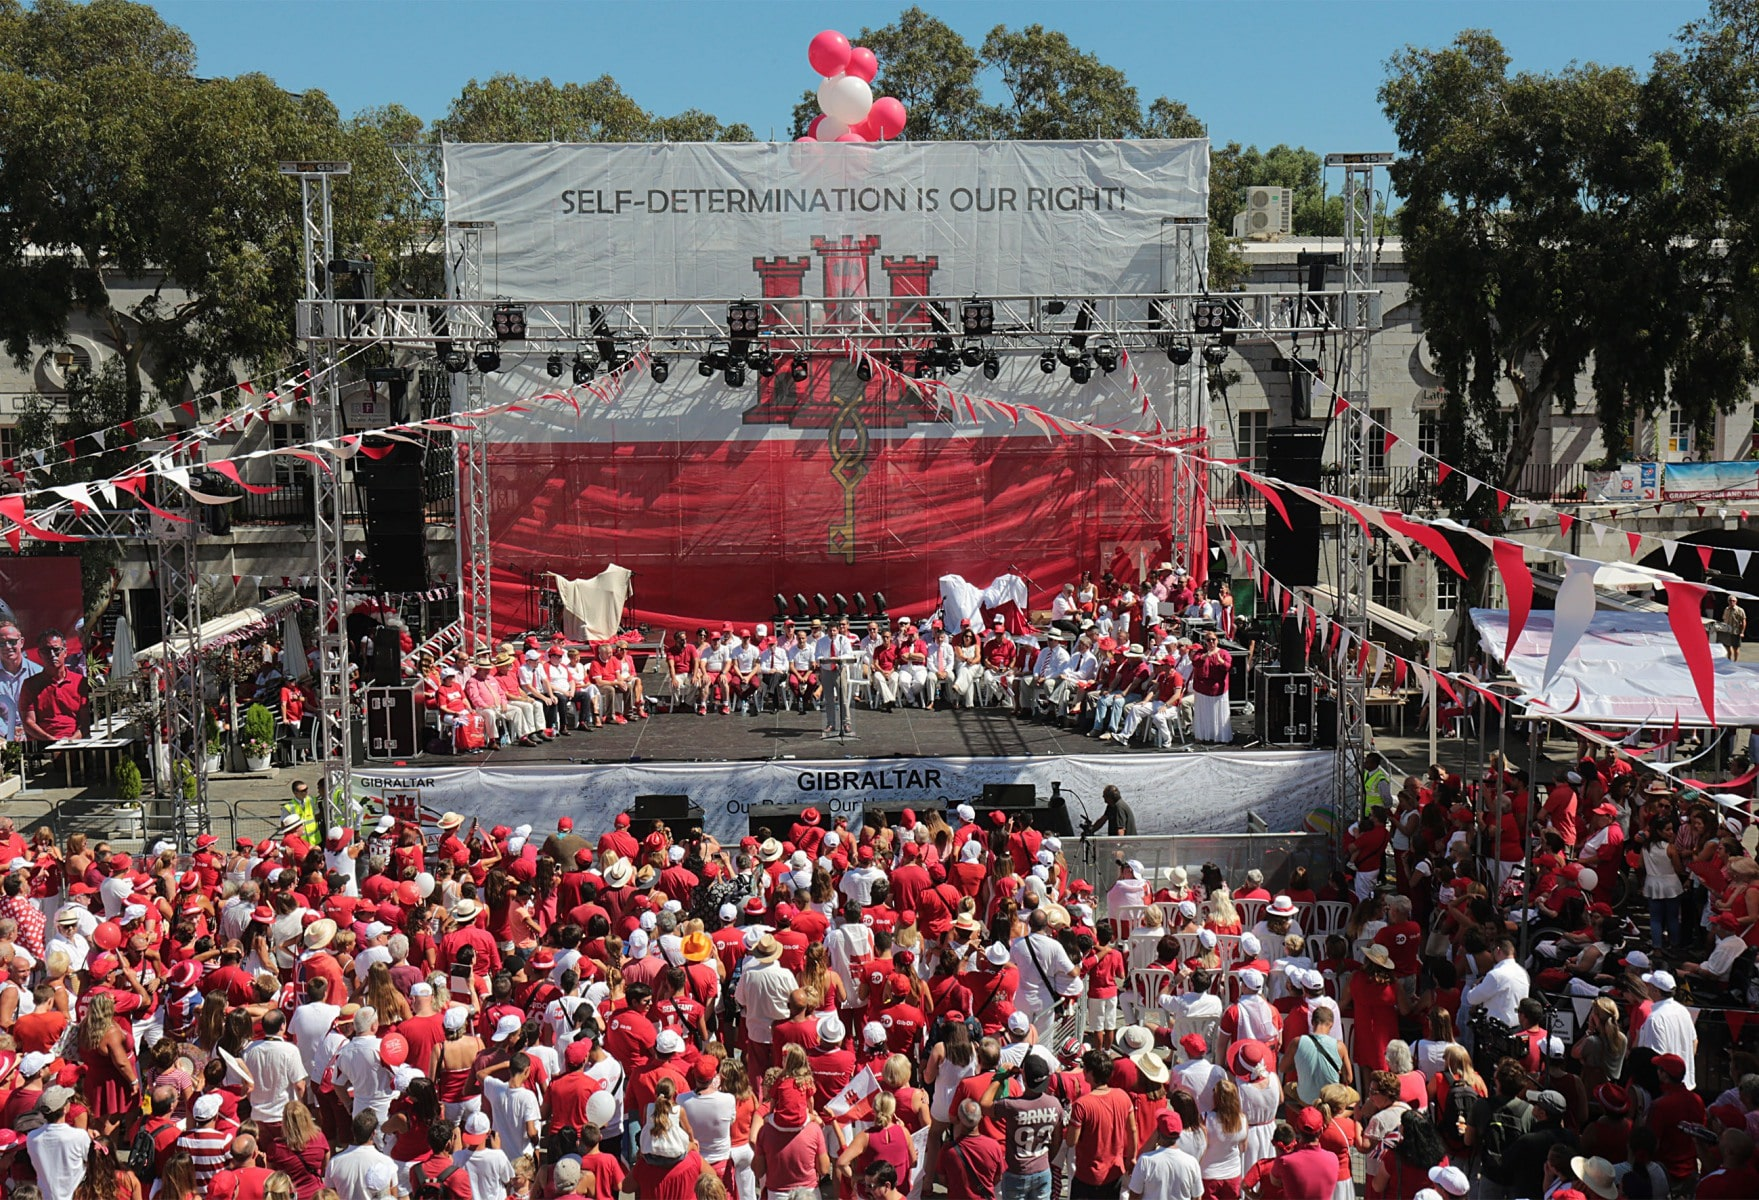 160910-national-day-gibraltar-2016-53_29605123075_o